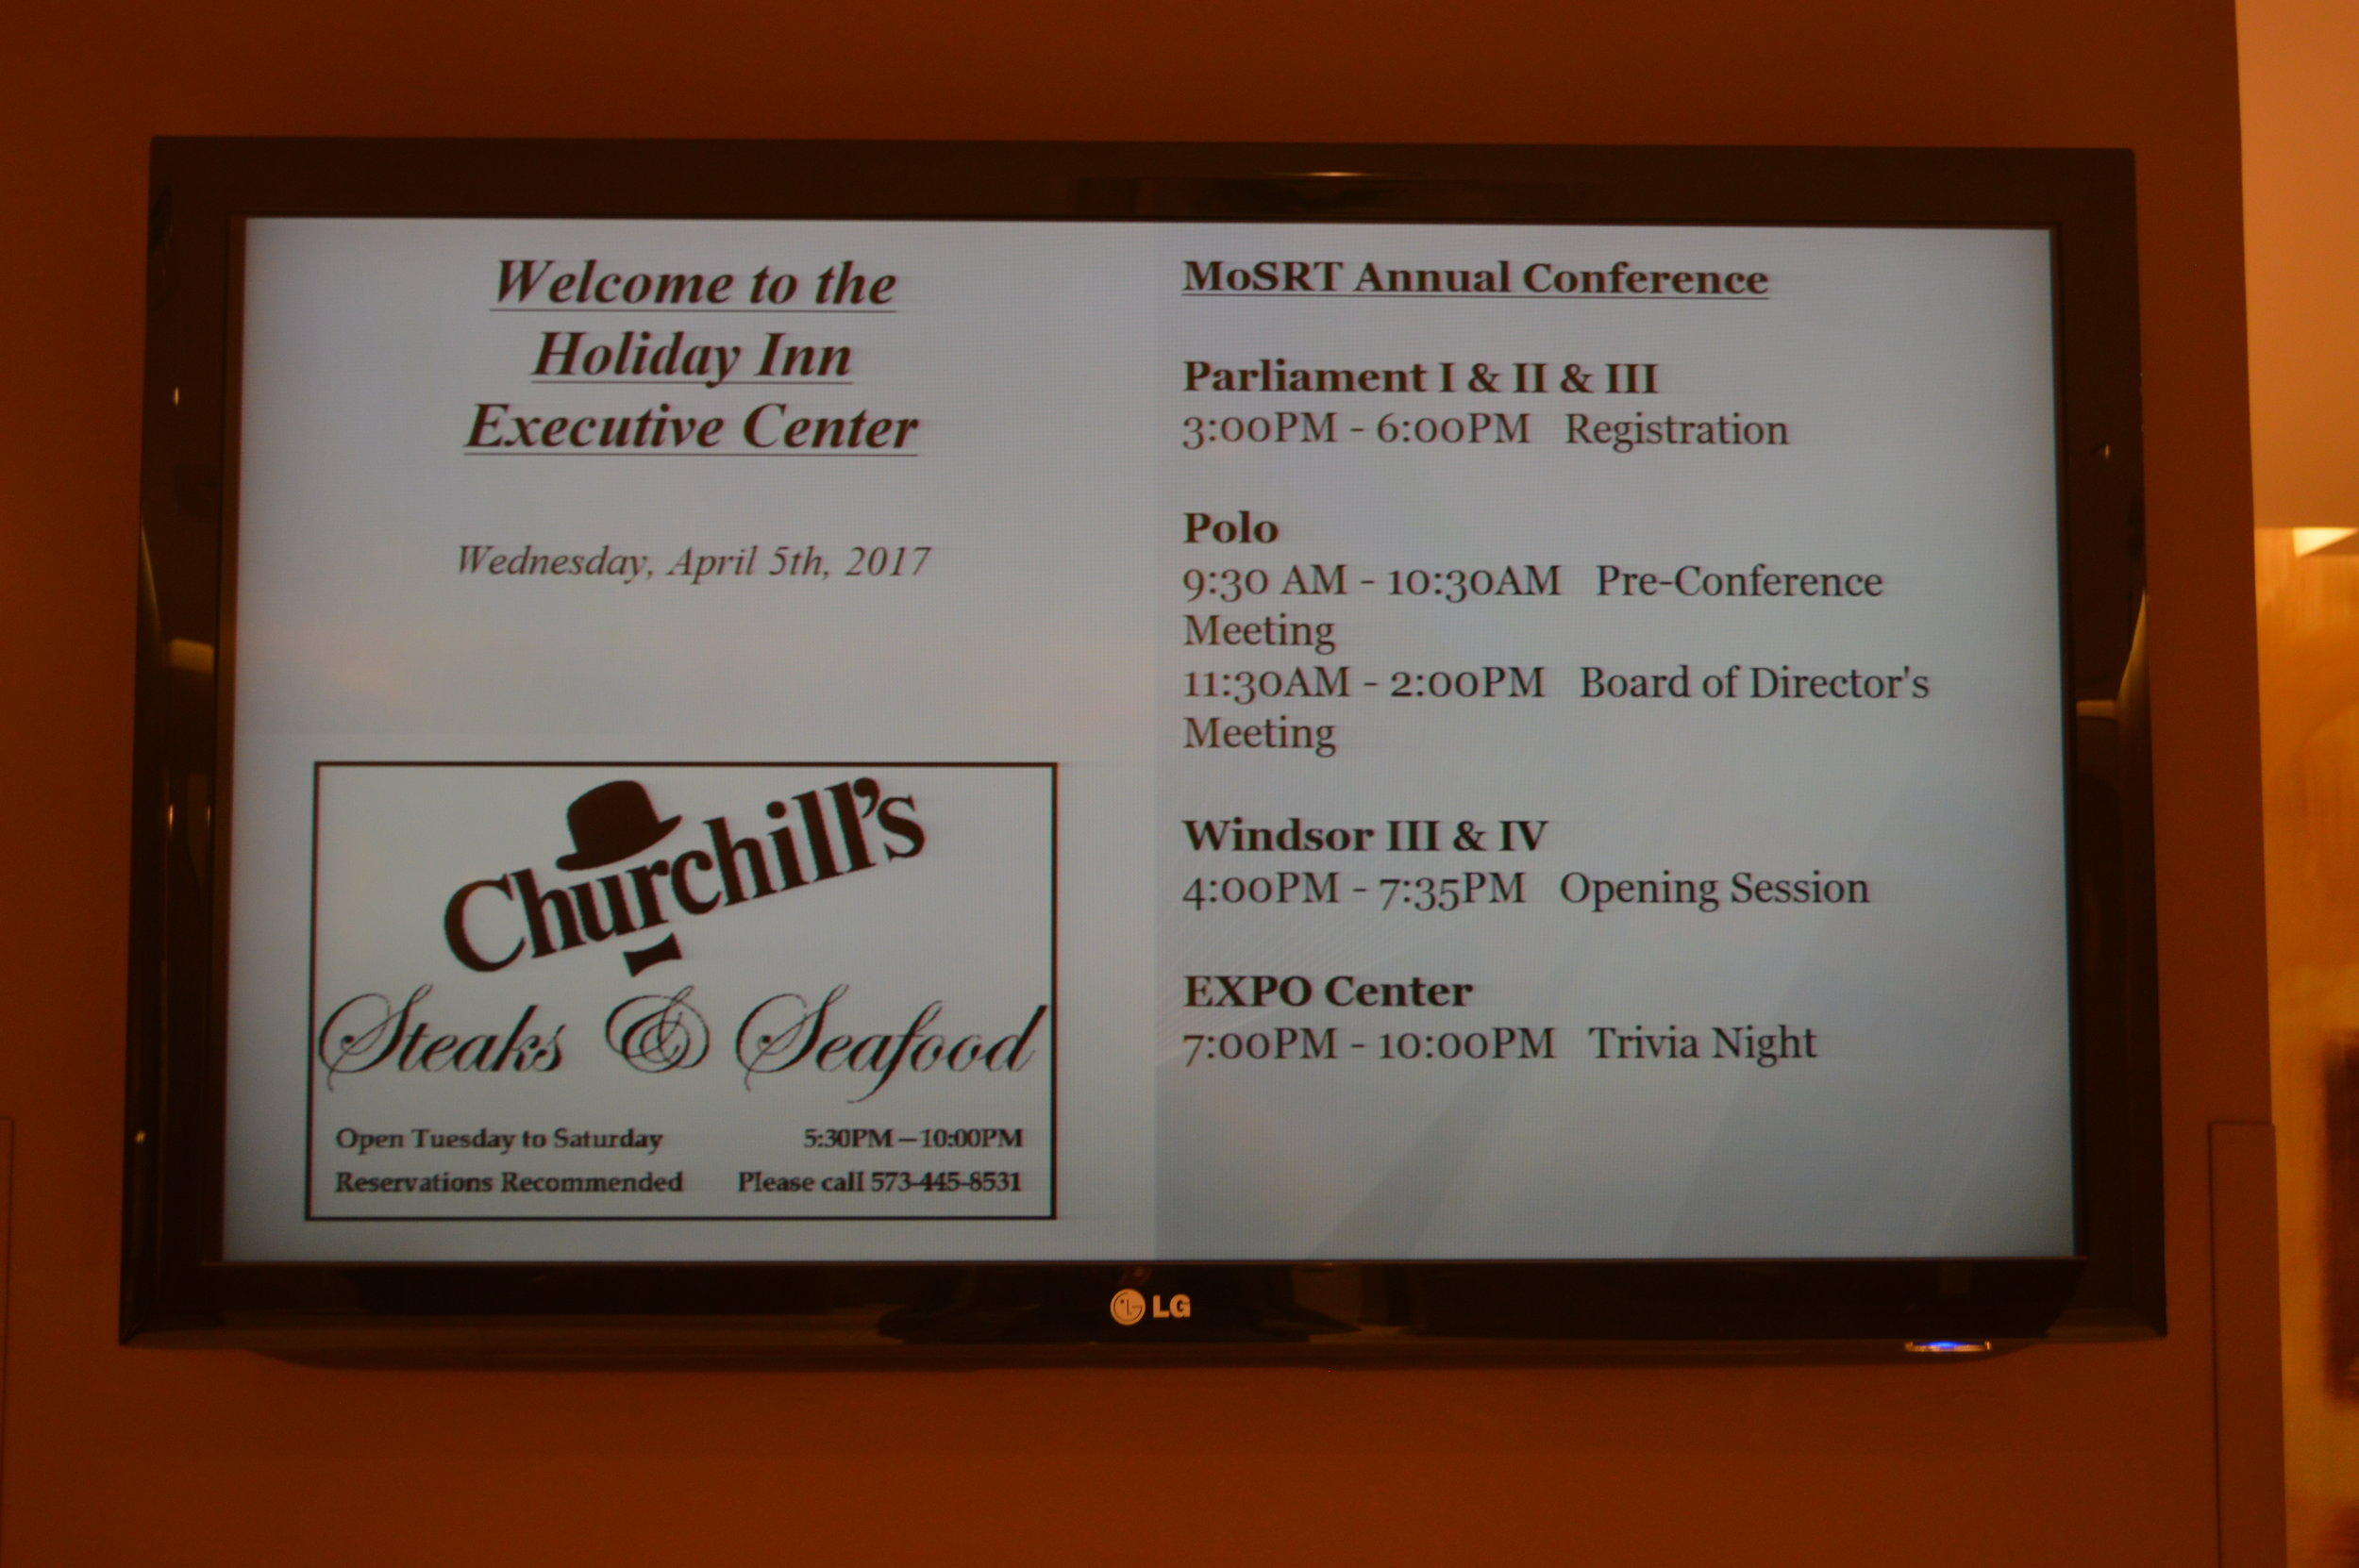 Conference Room Display Board.jpg